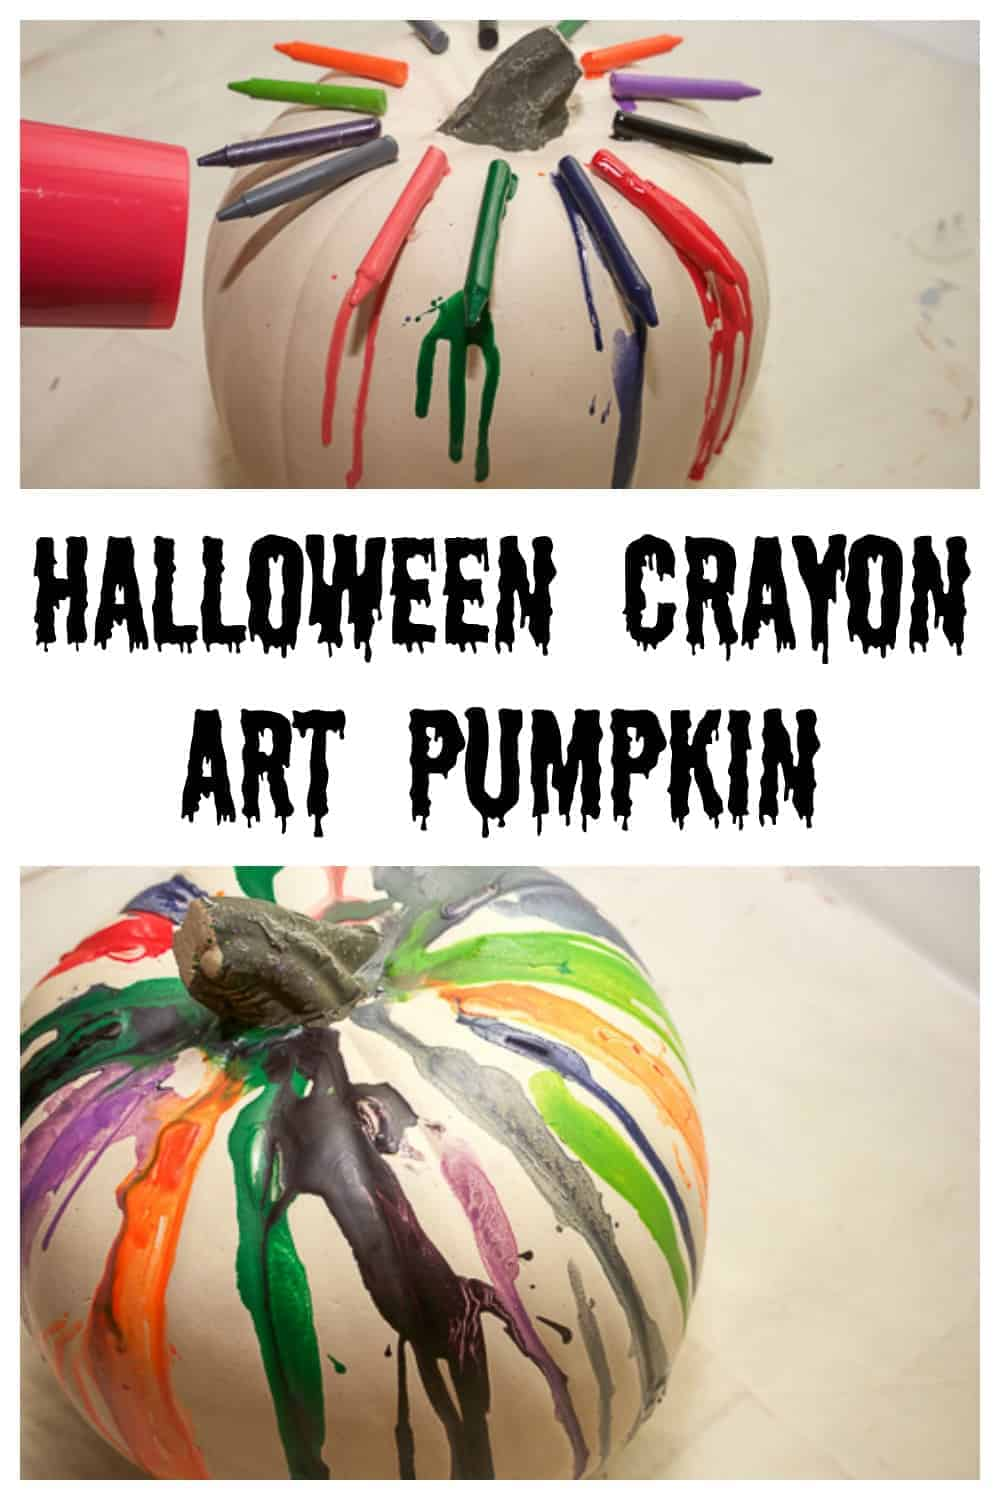 This DIY Halloween Crayon Art Pumpkin is unique, funky, and the perfect addition to your Halloween decor. It's also so fun to make.